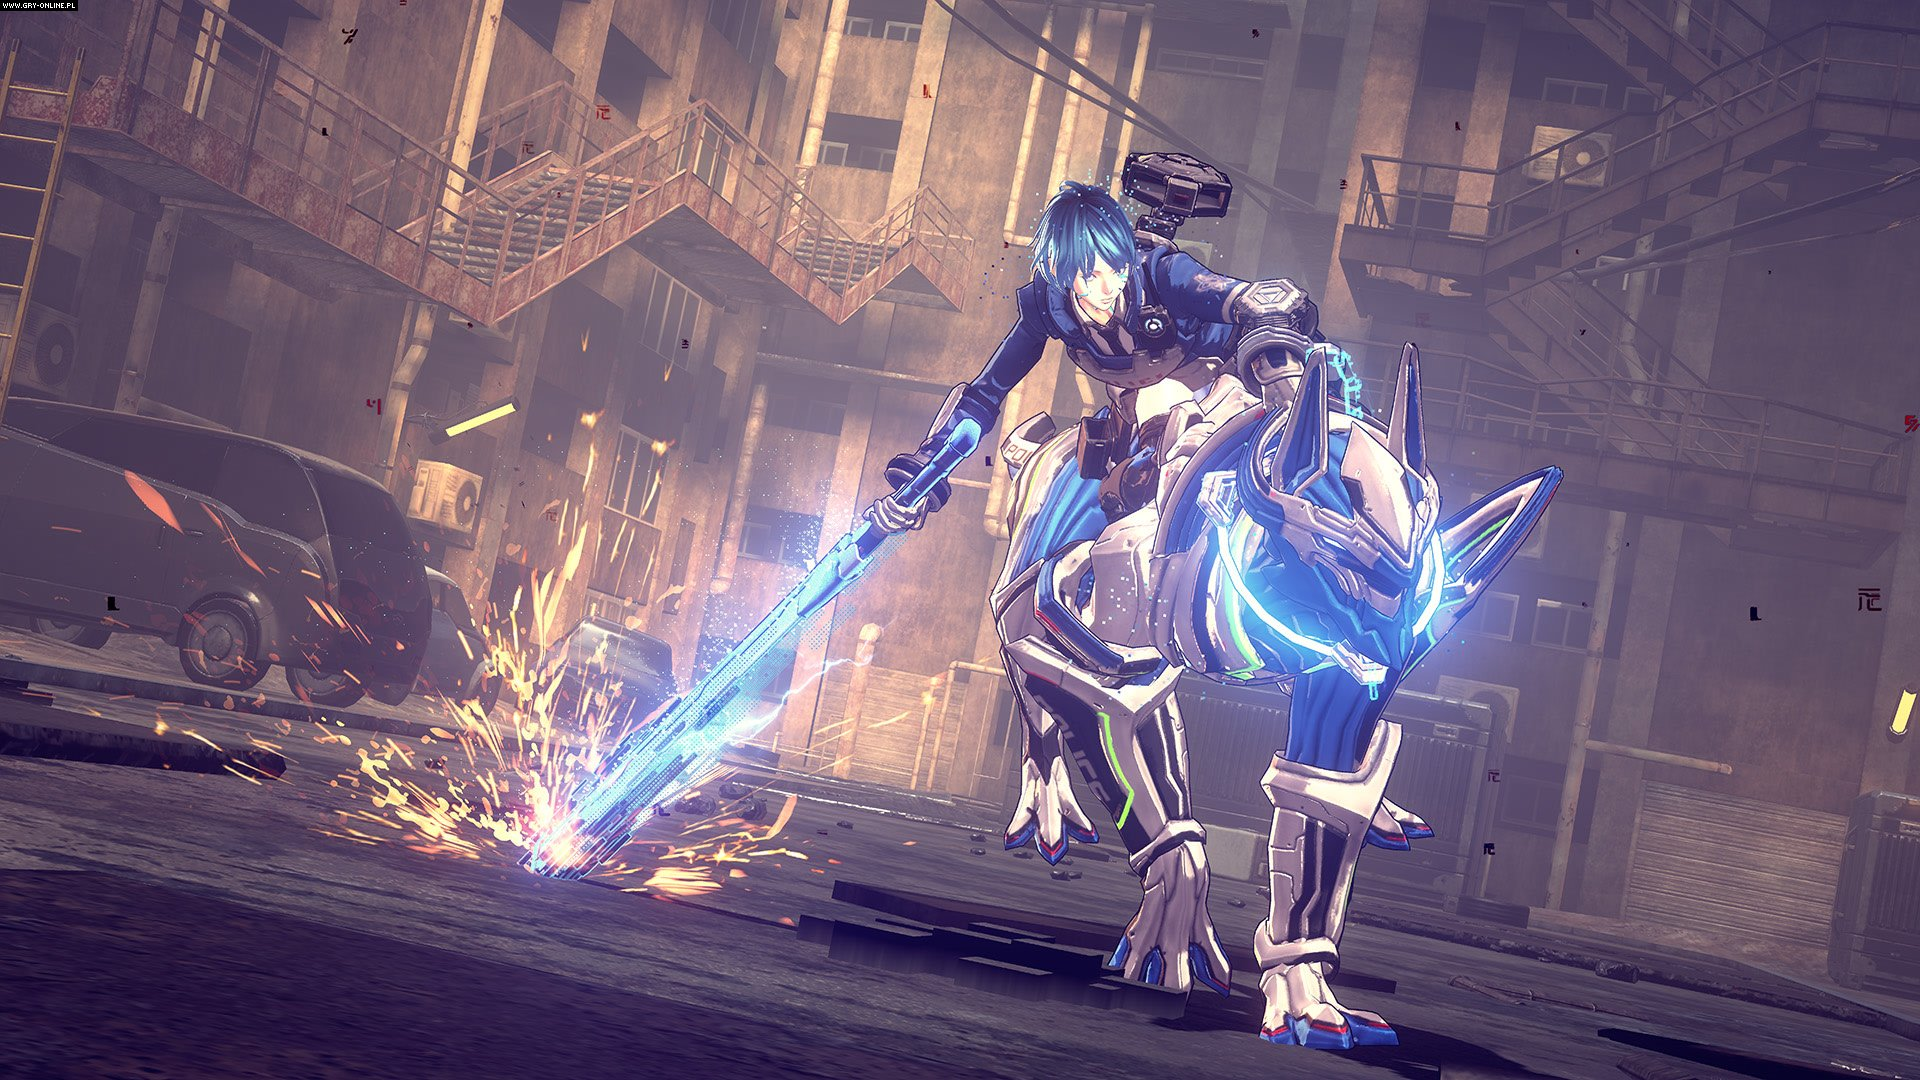 Astral Chain Switch Gry Screen 33/33, PlatinumGames, Nintendo